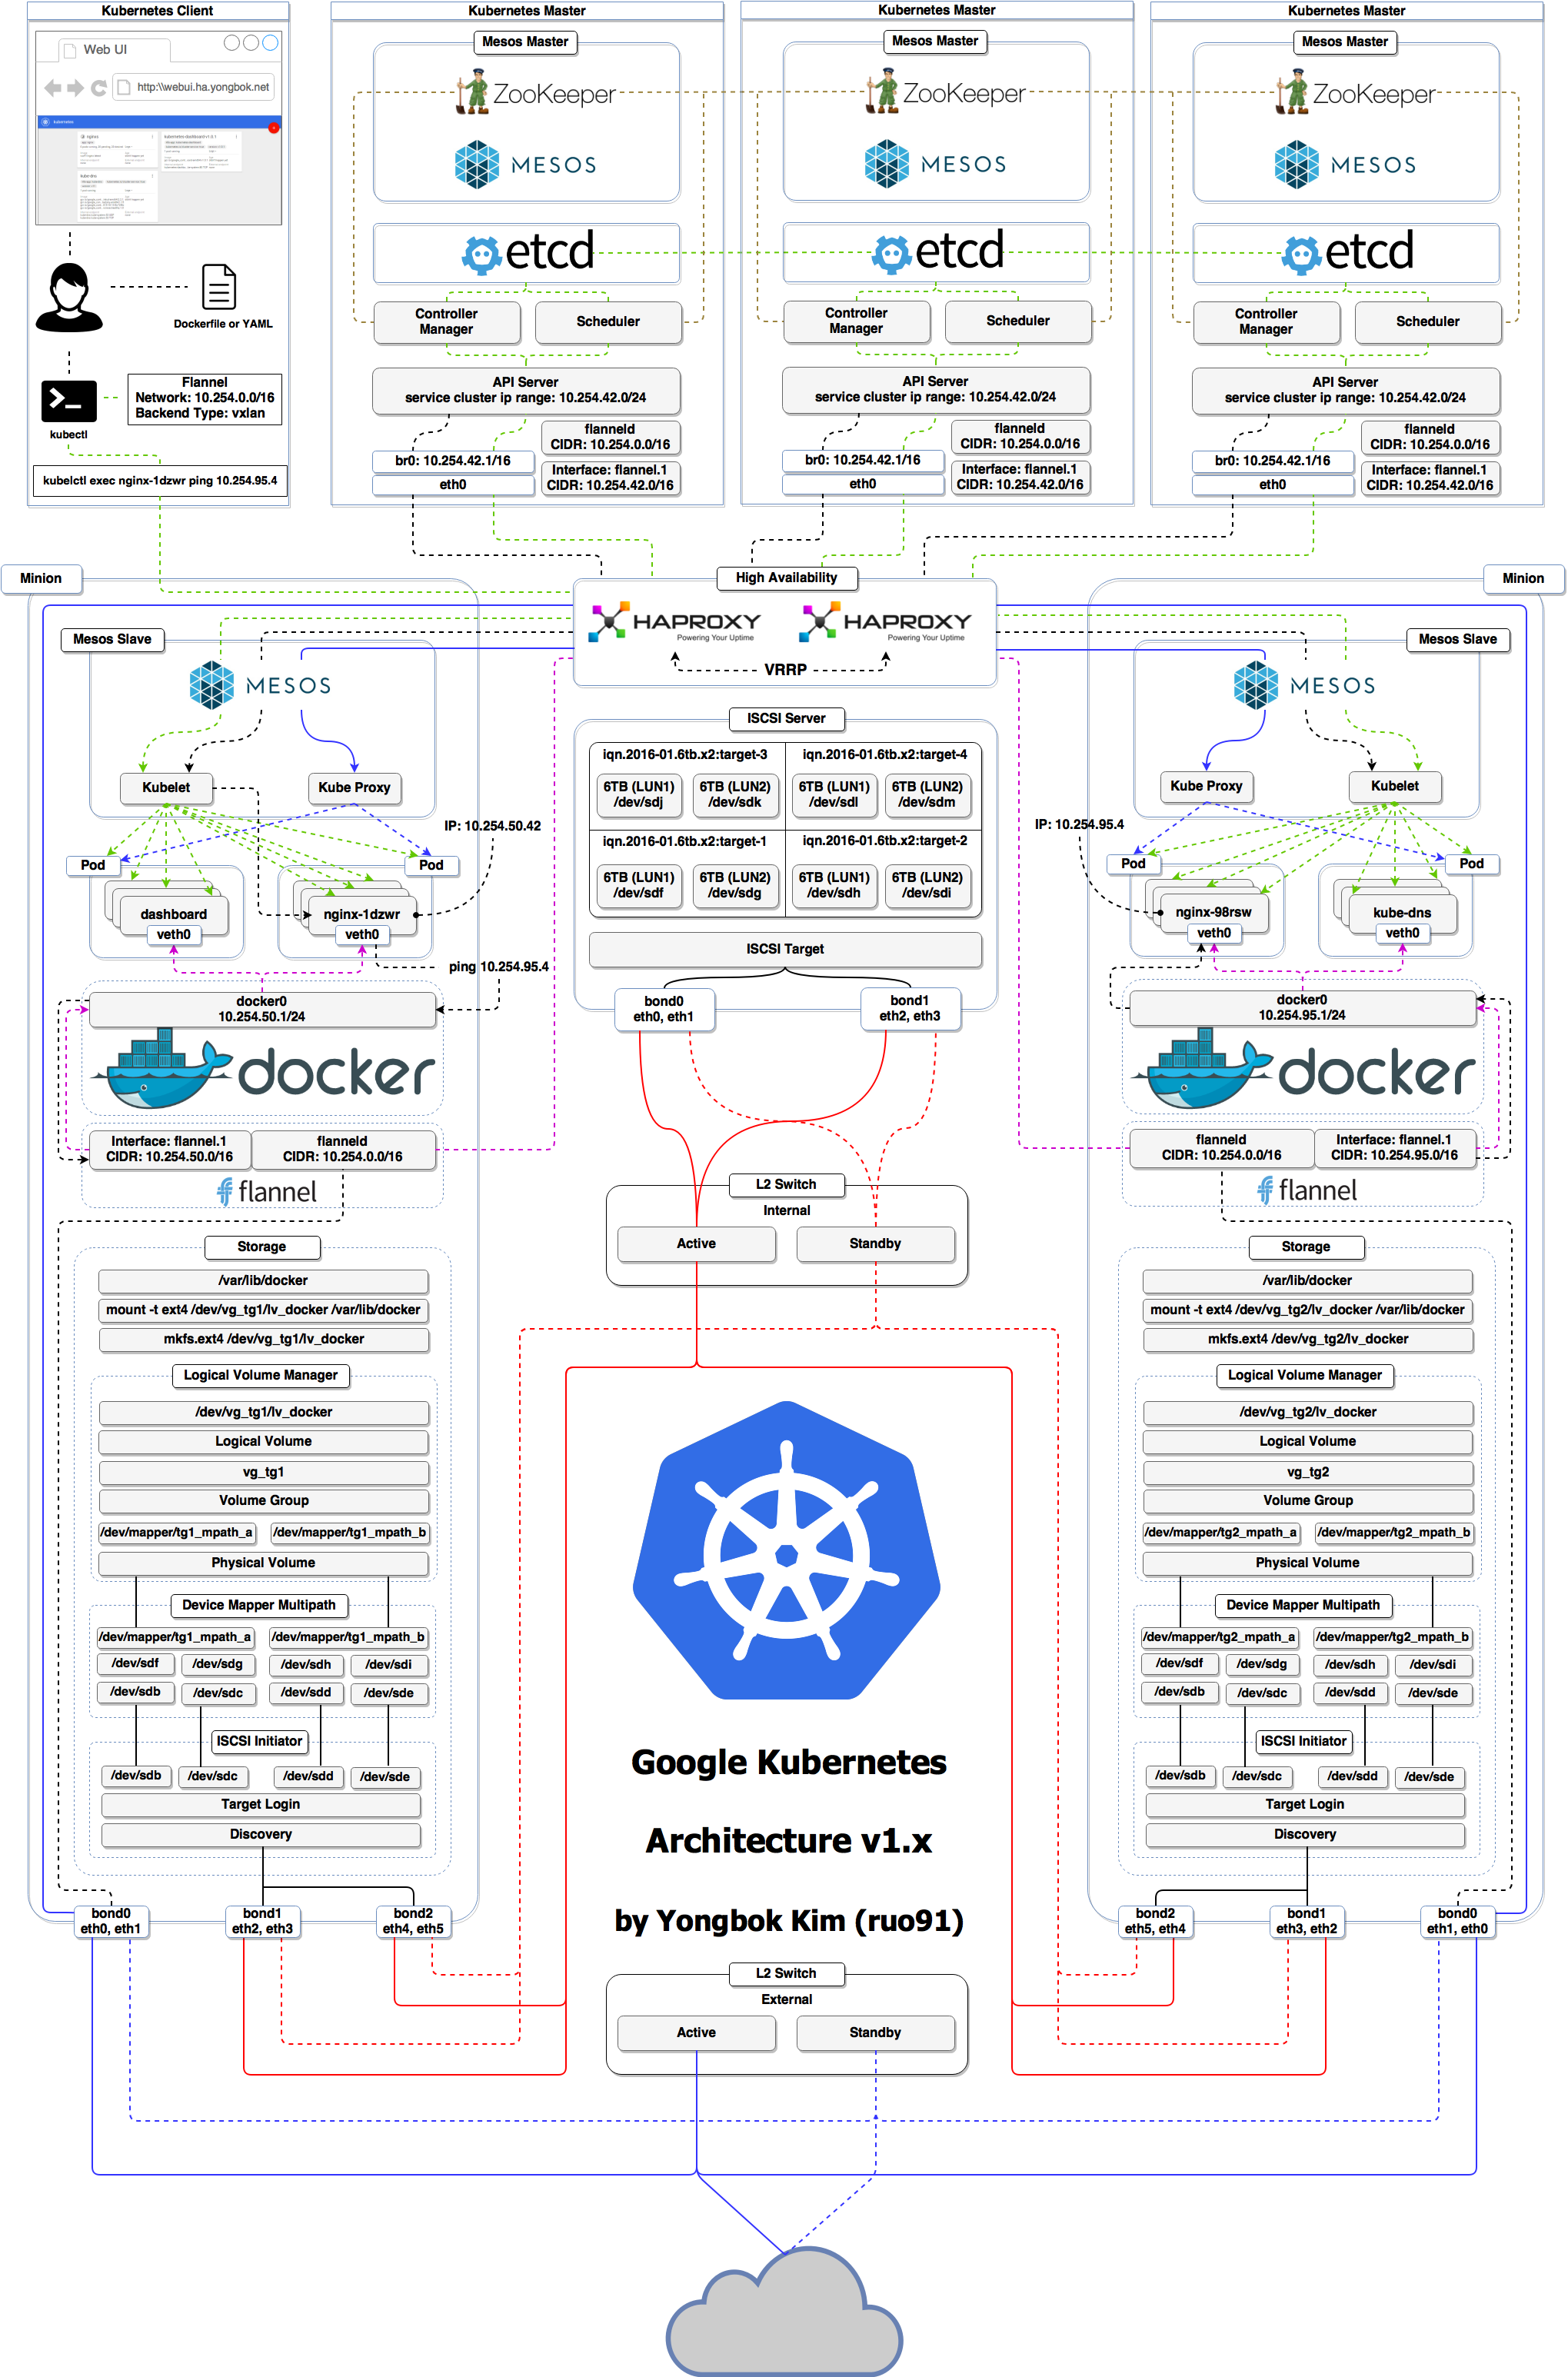 Kubernetes is an open source container management platform designed to run enterpriseclass cloudenabled and webscalable IT workloads It is built upon